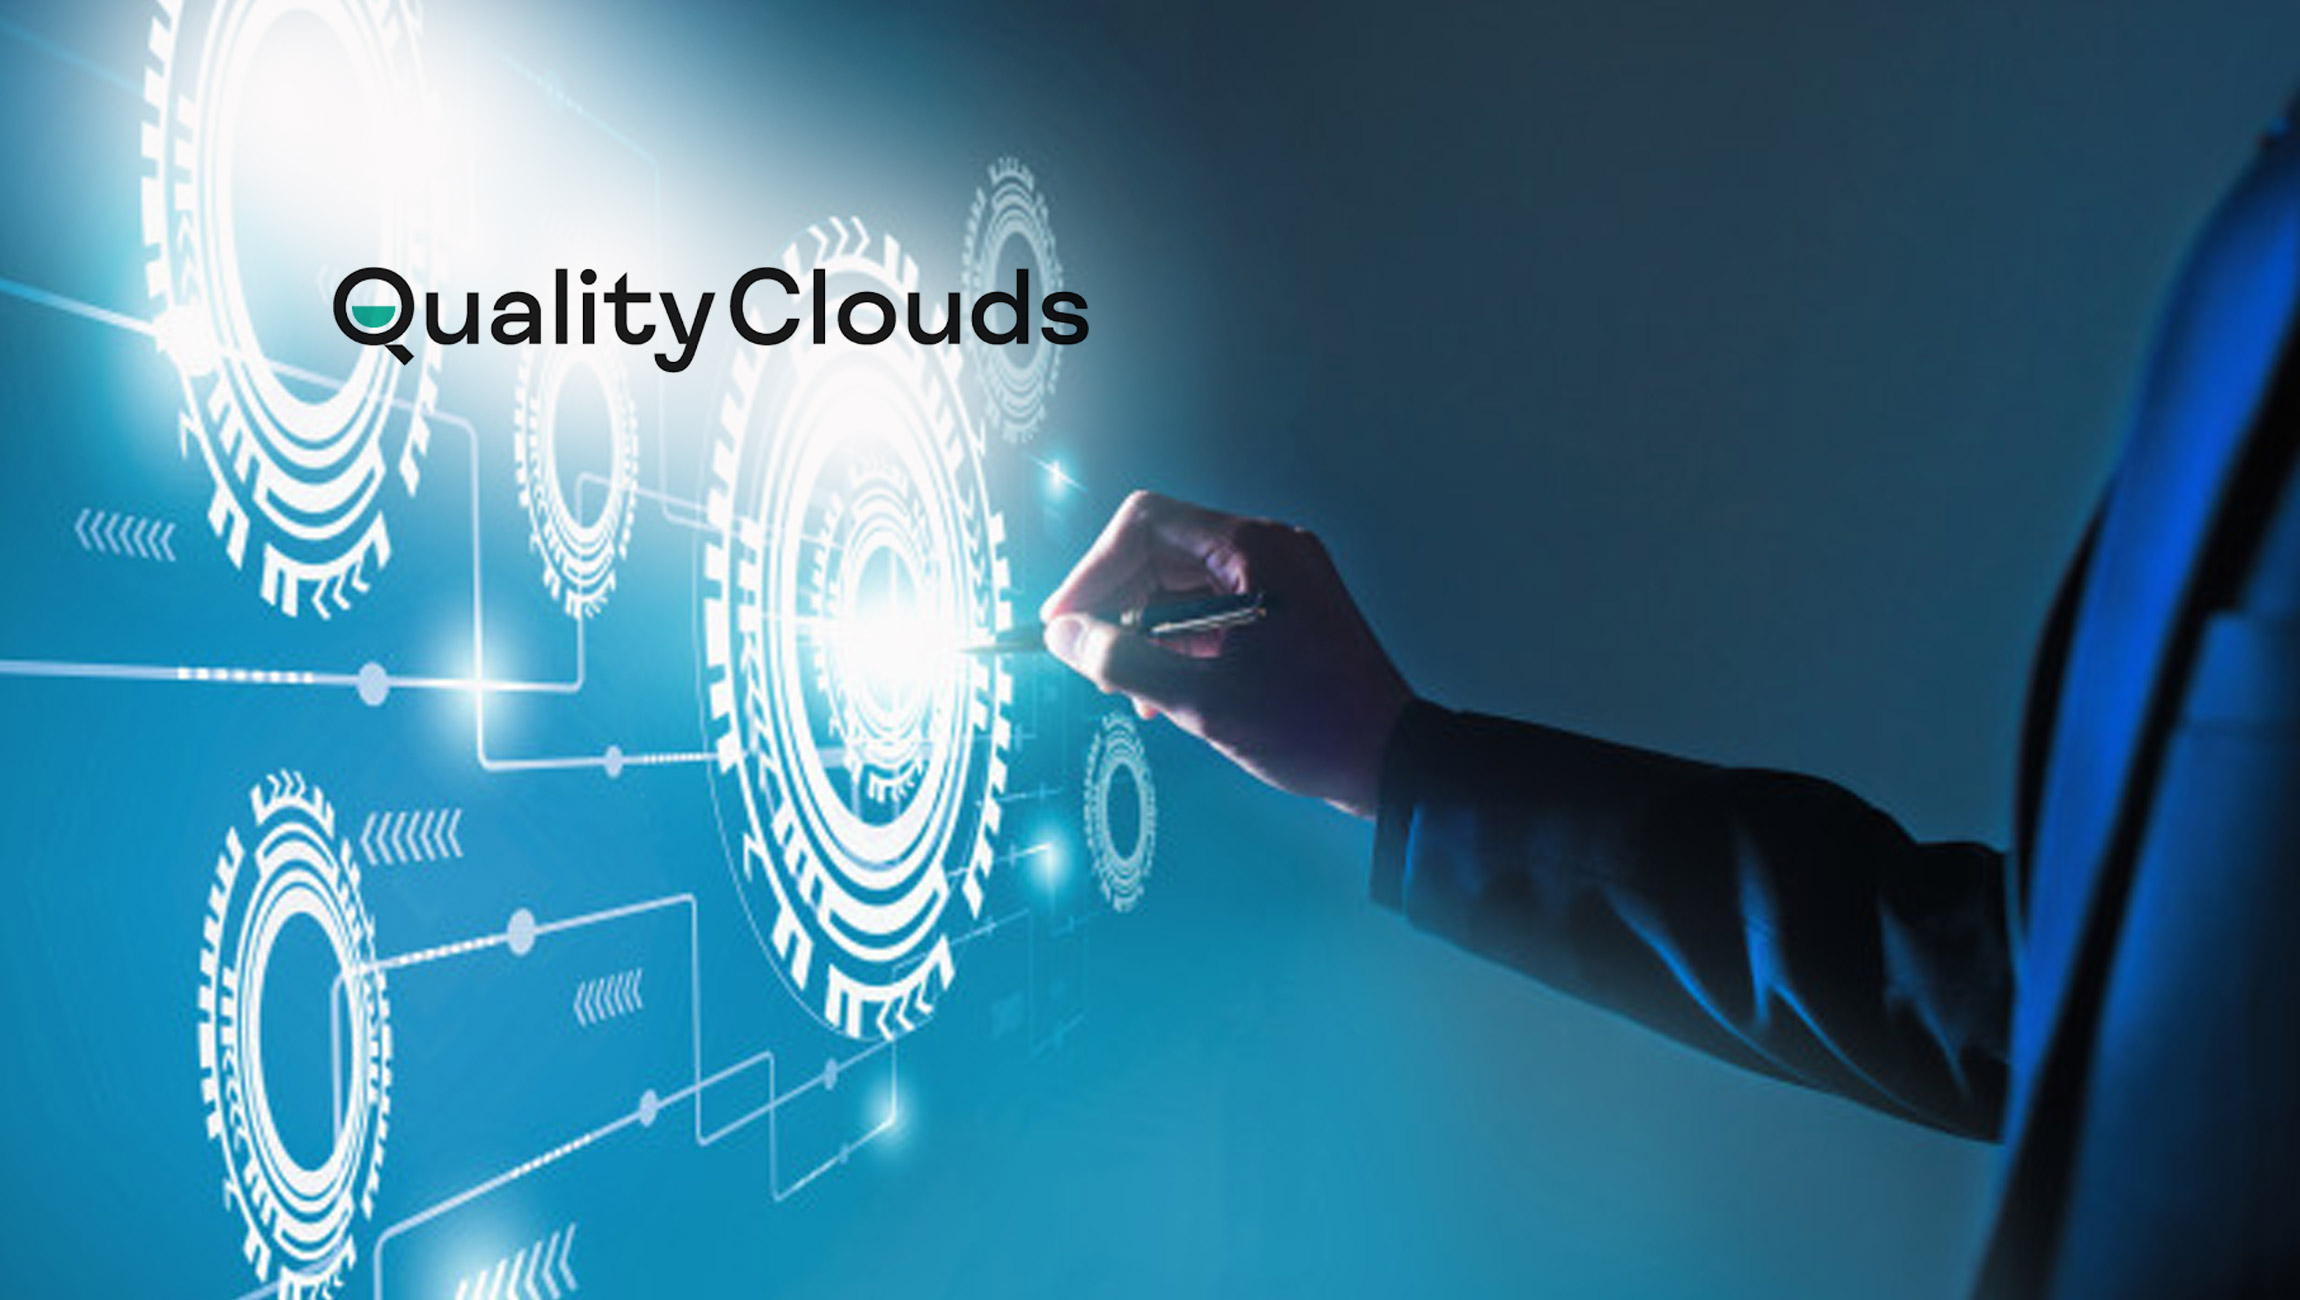 Quality Clouds Announces Its Next Salesforce Webinar Based on How Automation Can Charge a Whole SDLC